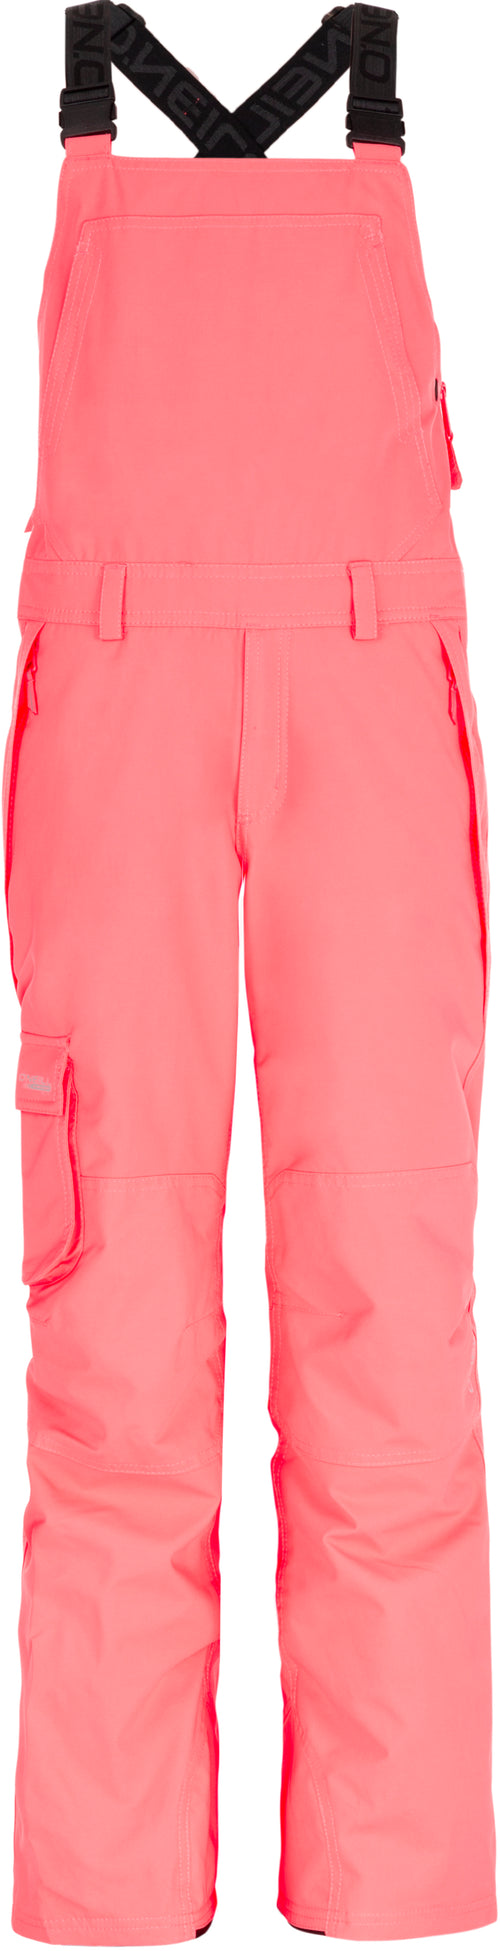 GIRLS BIB PANT